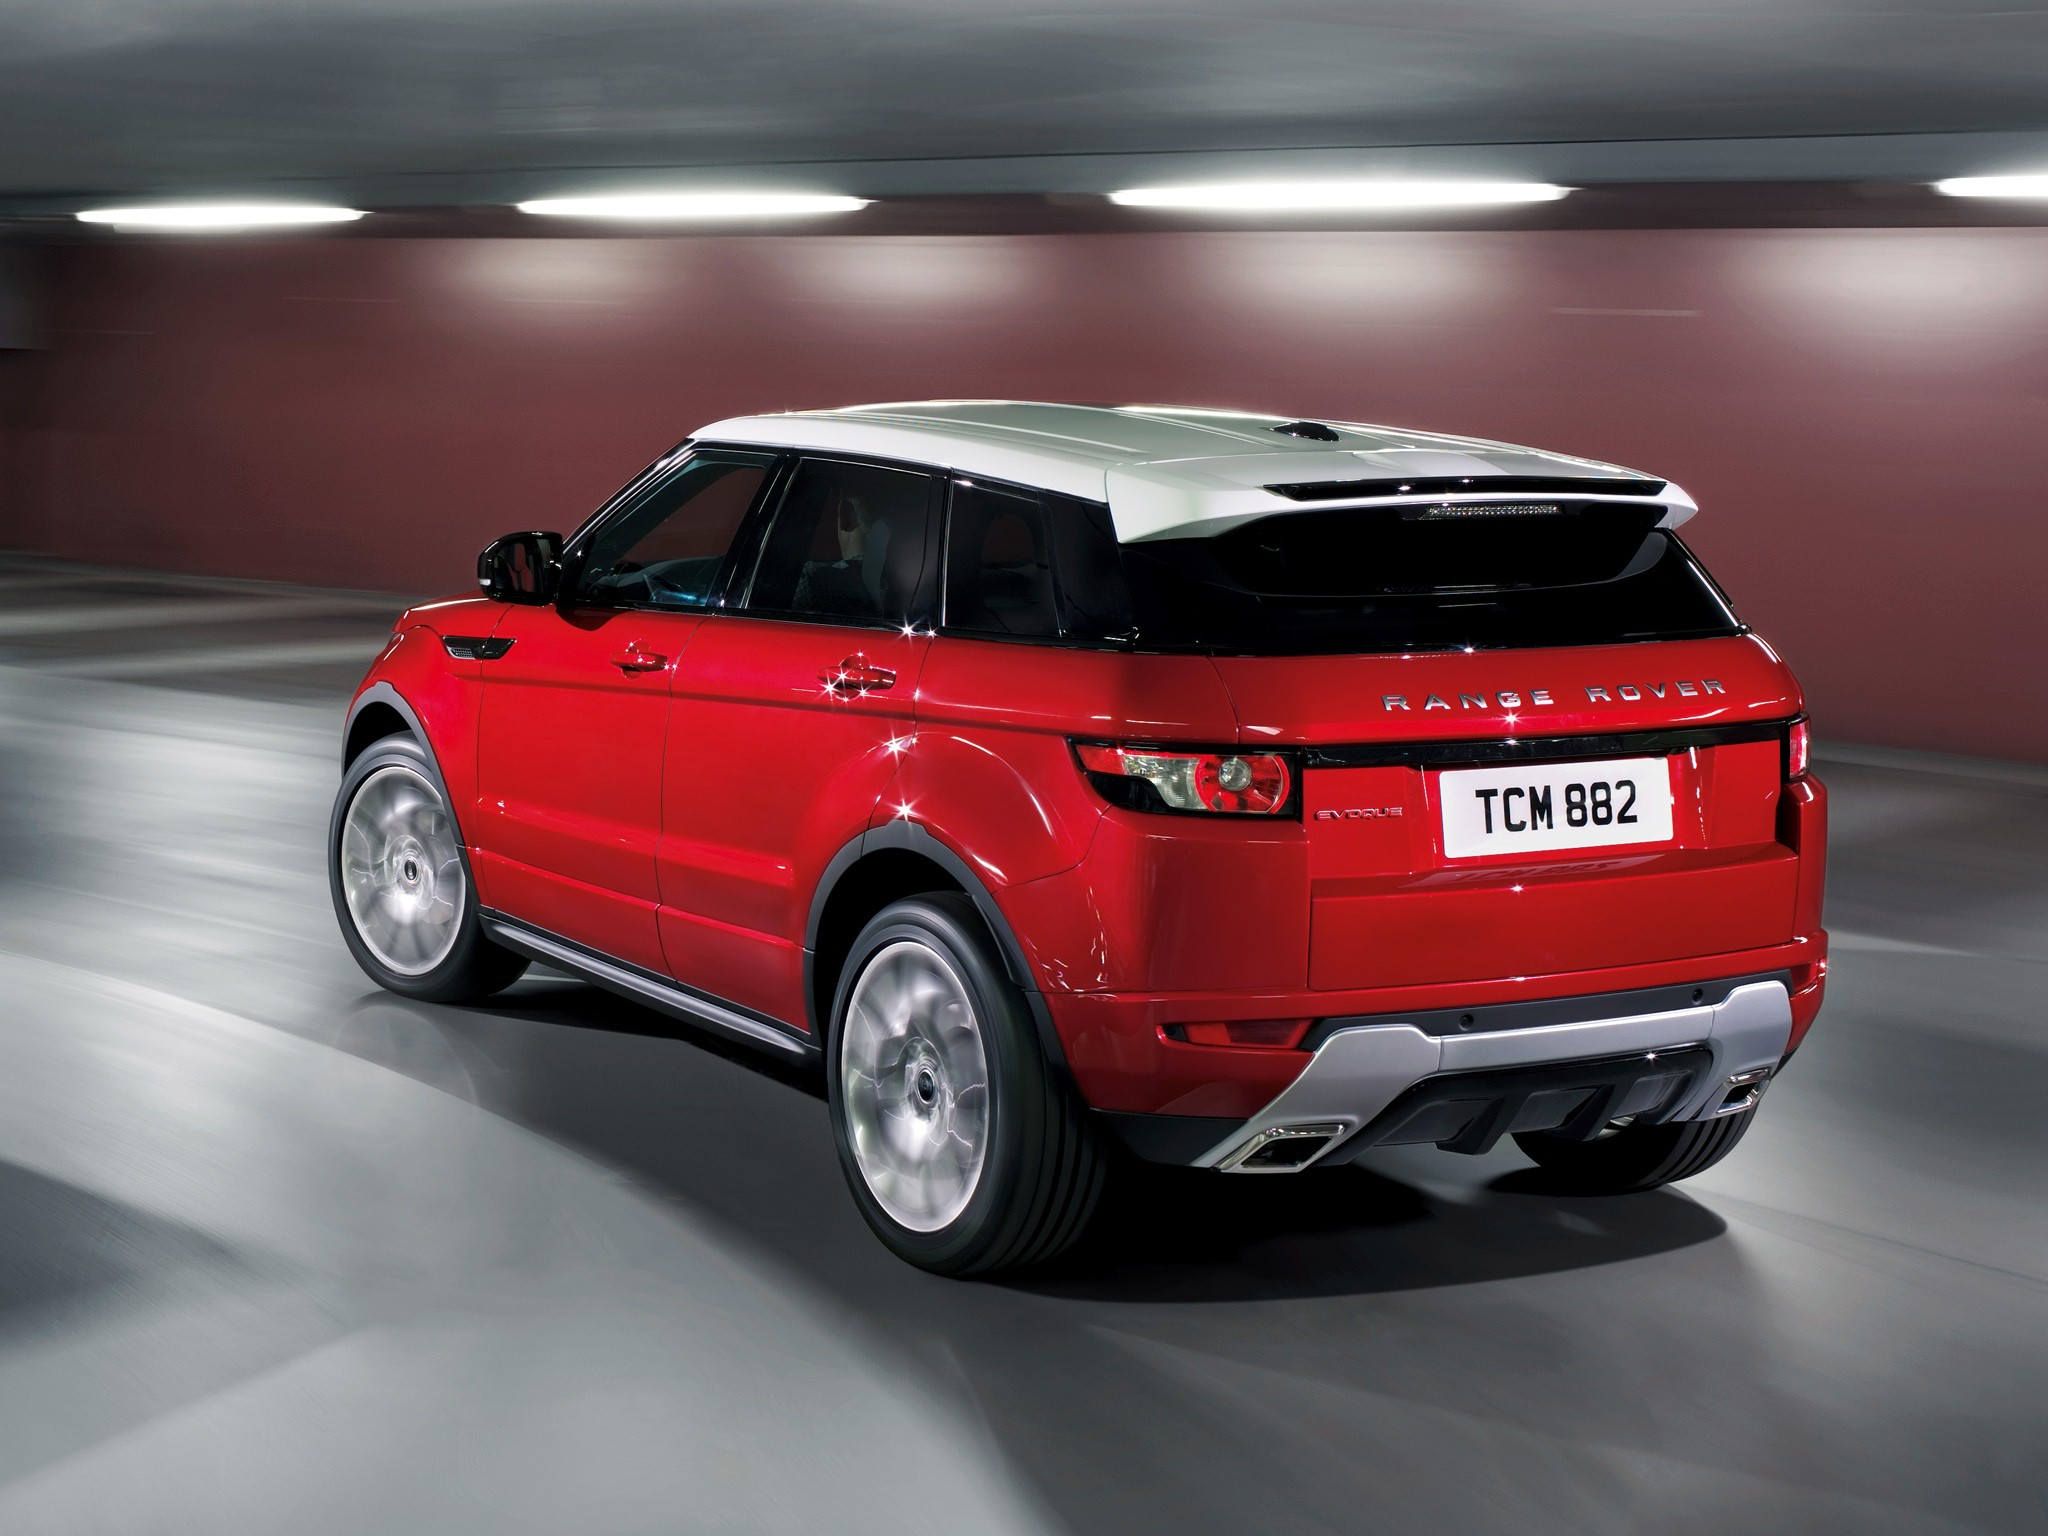 land rover range rover evoque 5 door specs 2011 2012 2013 2014 2015 autoevolution. Black Bedroom Furniture Sets. Home Design Ideas